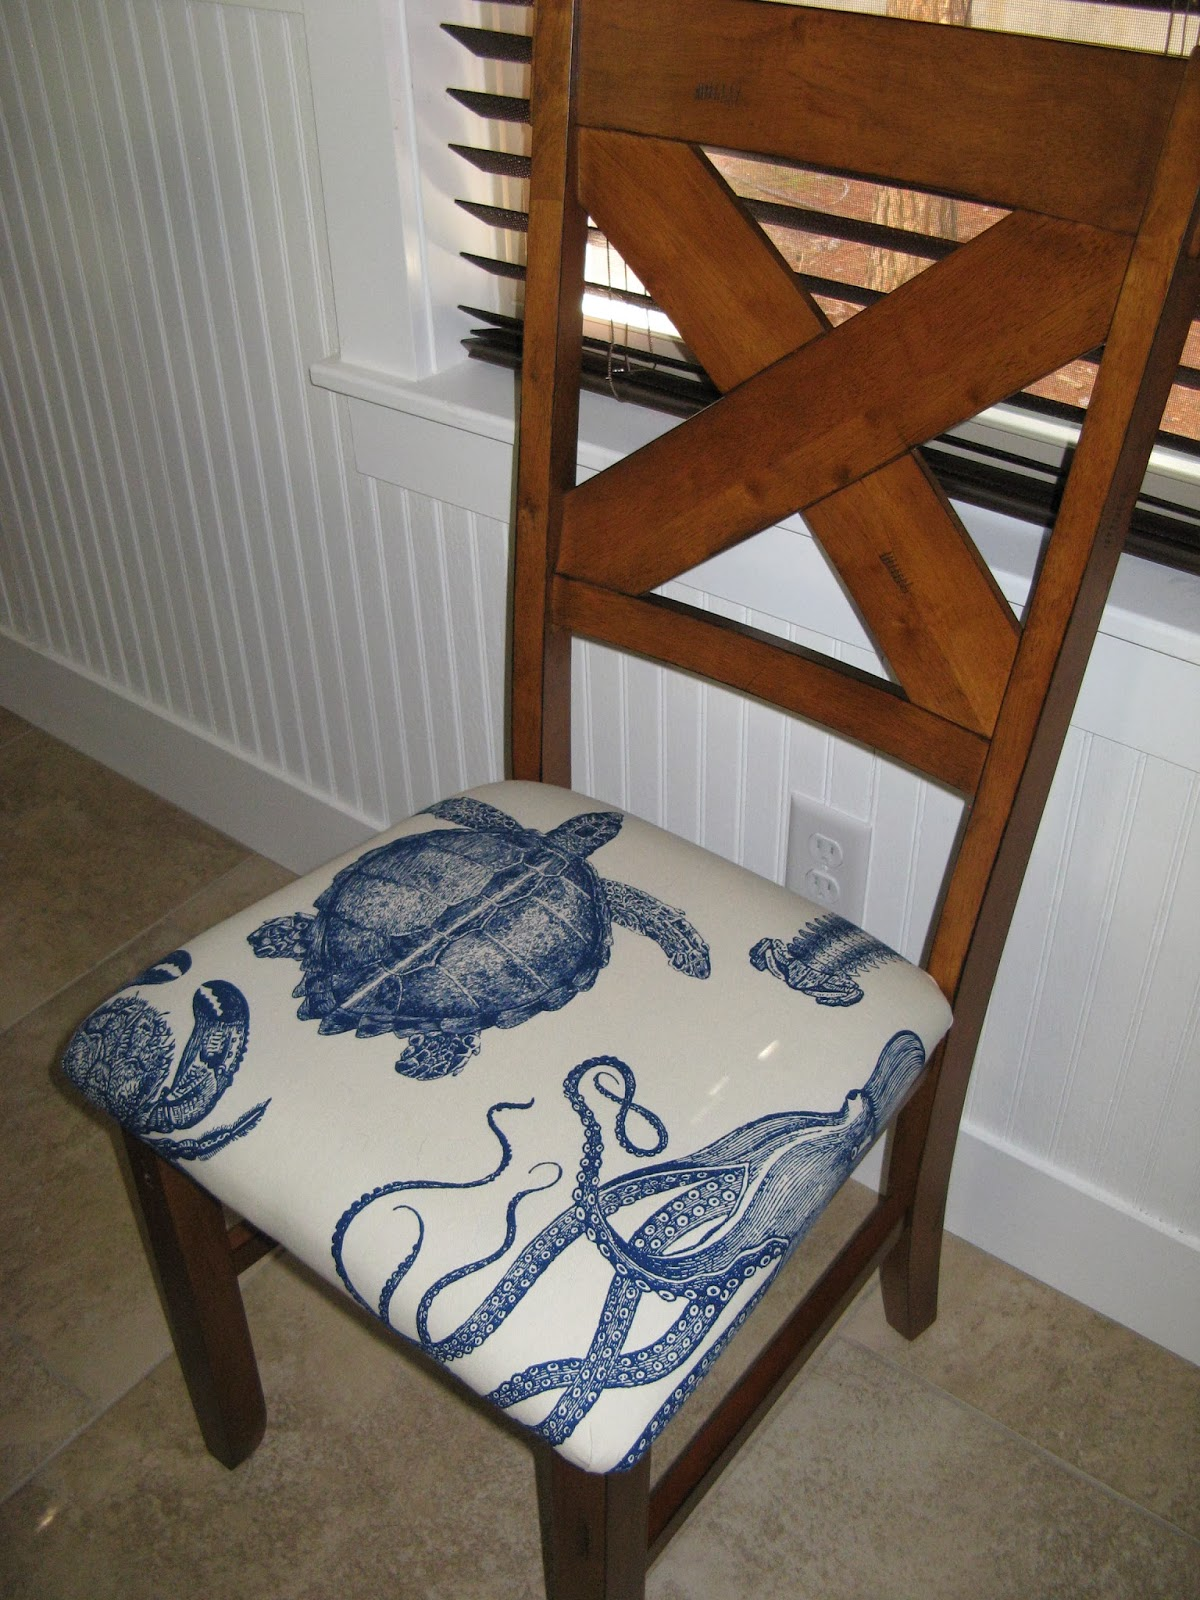 how do you reupholster dining room chairs | Susan Snyder: REUPHOLSTER CHAIR SEATS